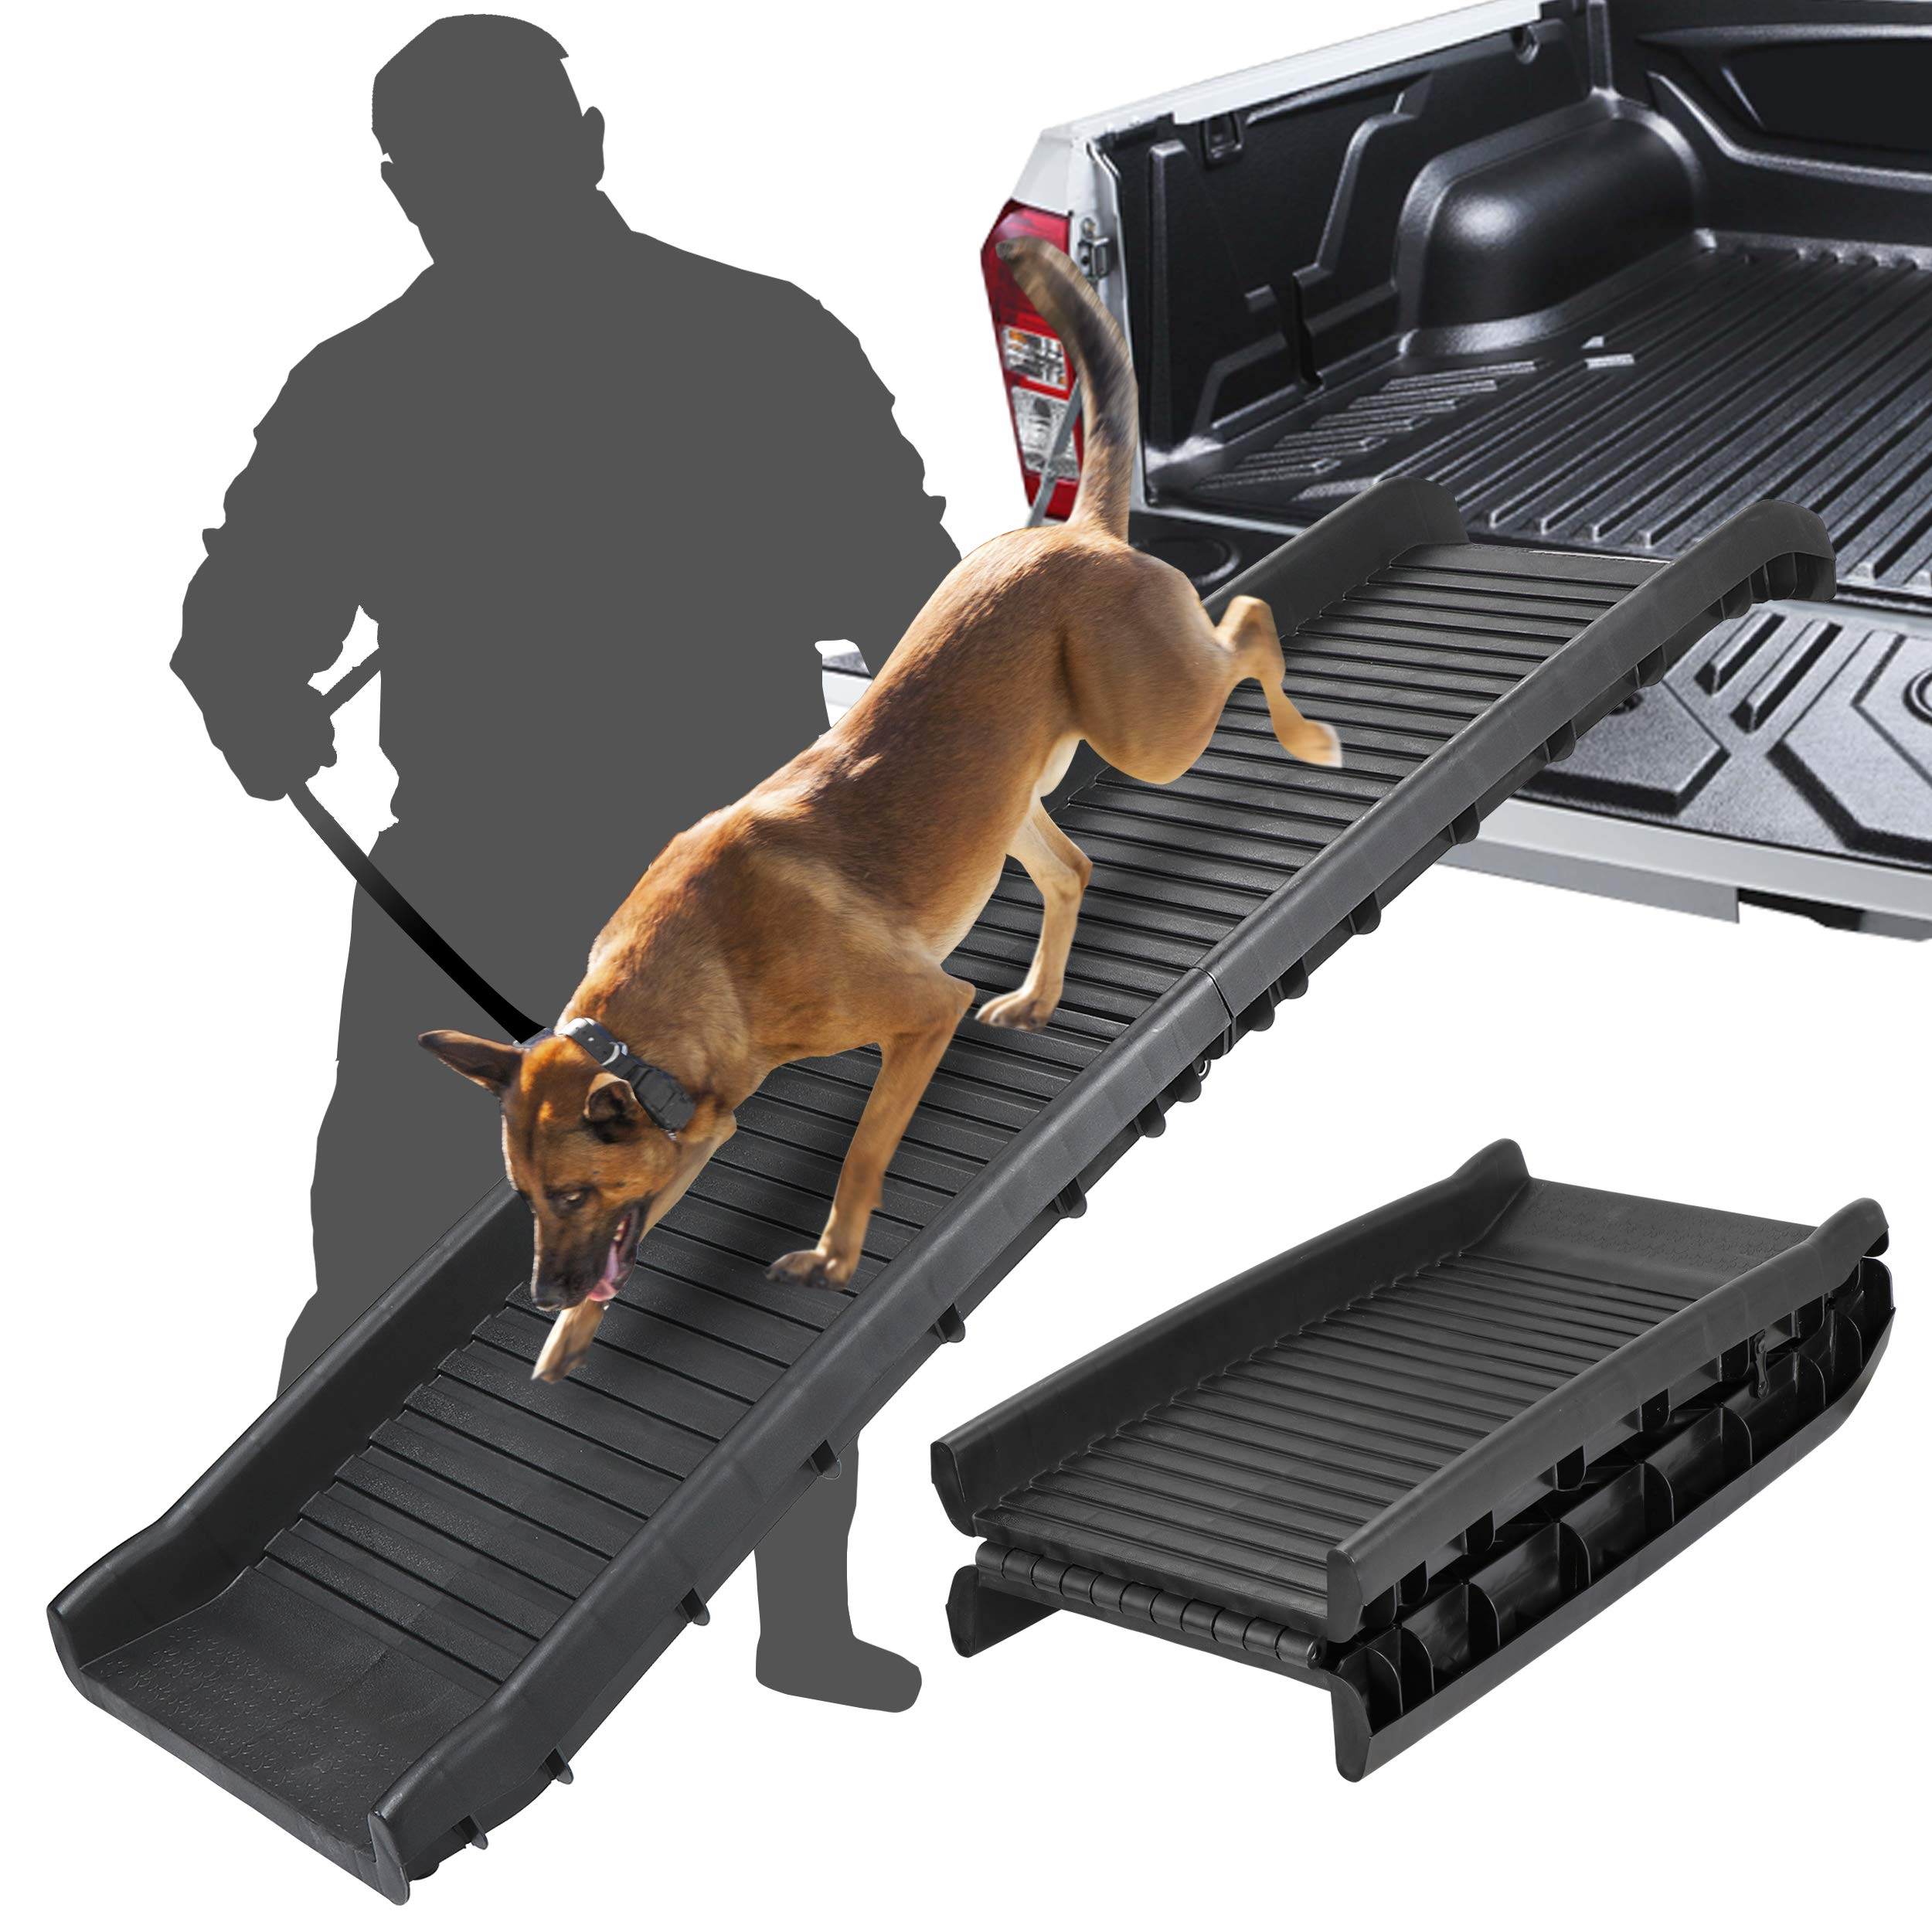 ZENY Bi-Fold Pet Ramp for Dog and Cat Ramp Great for Trunk Back Seat Ladder Step Car SUV by ZENY